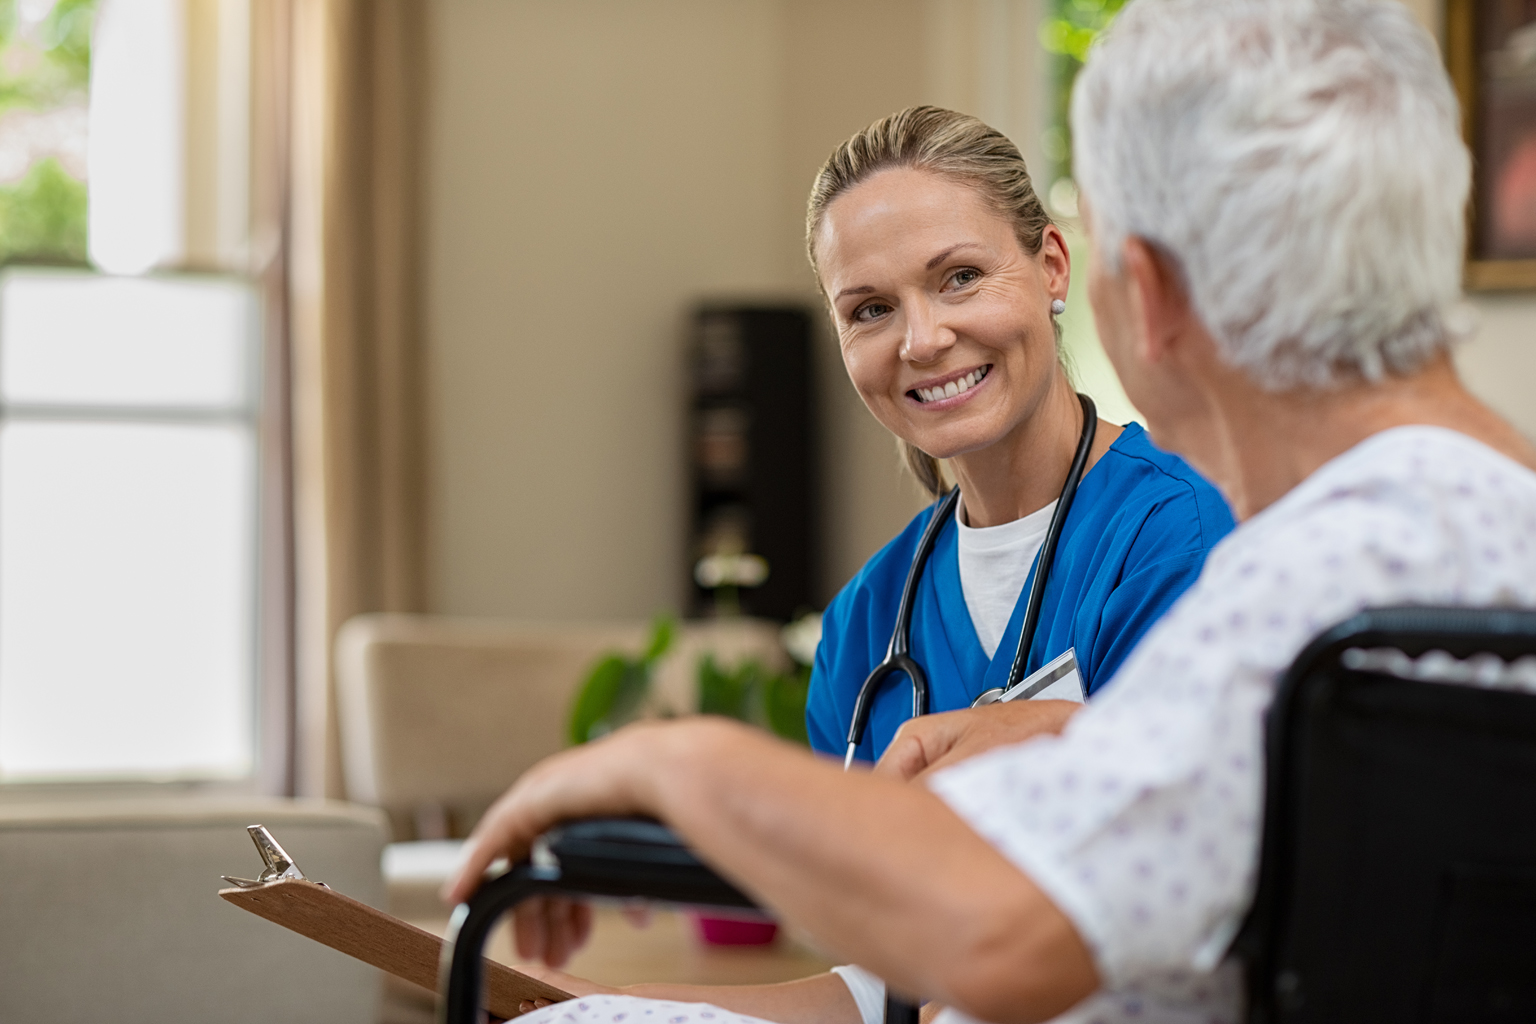 Home health nurse smiling at patient